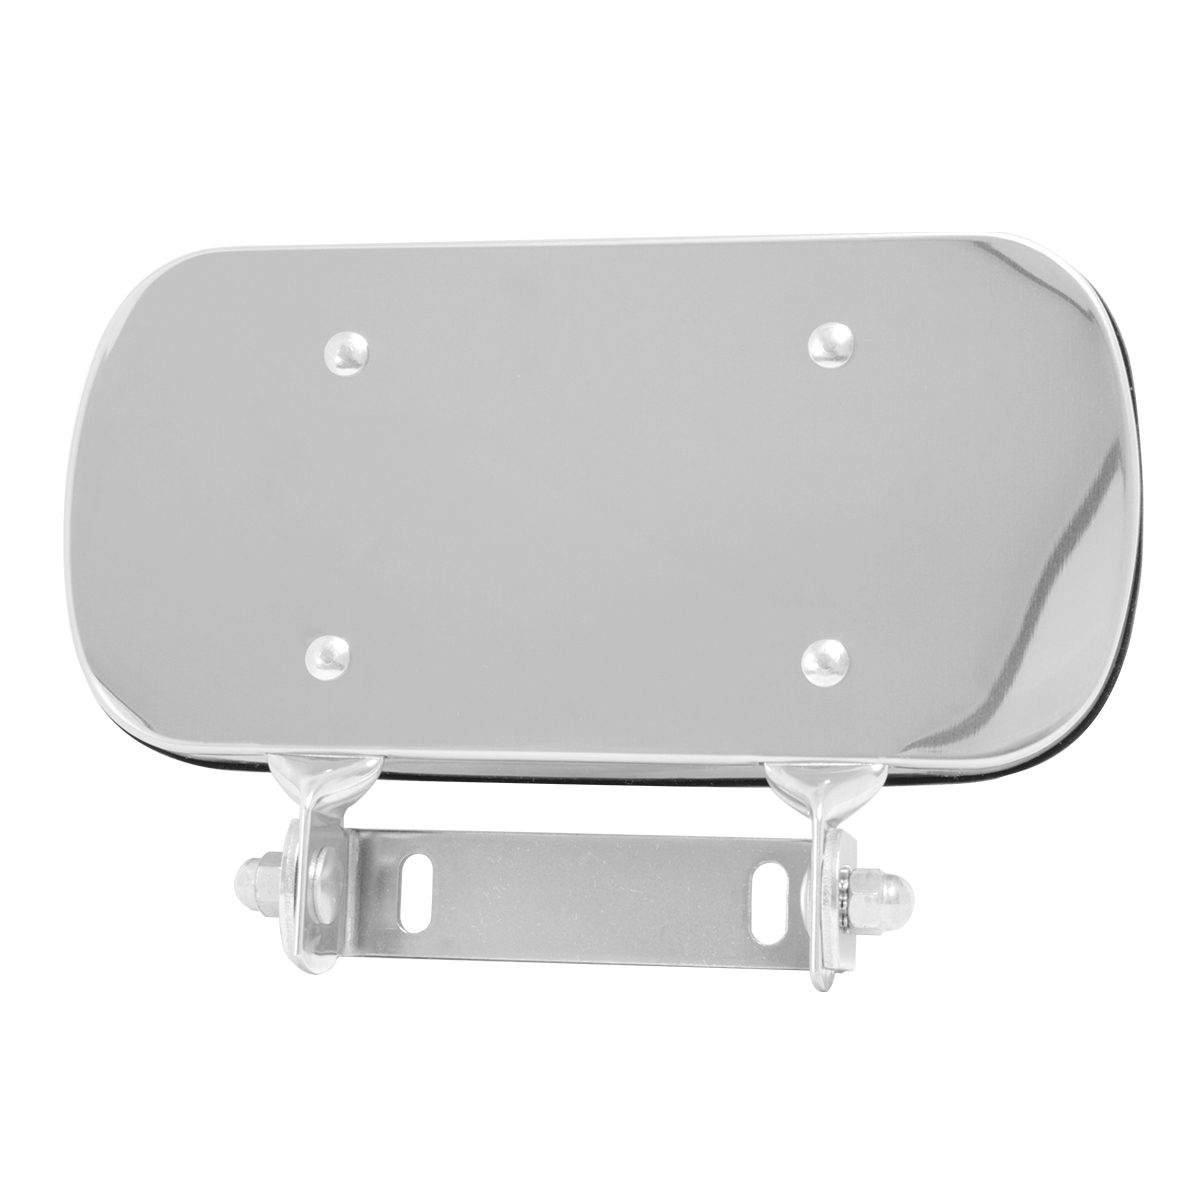 33300 Convex Blind Spot Mirrors with Door/Window Mount